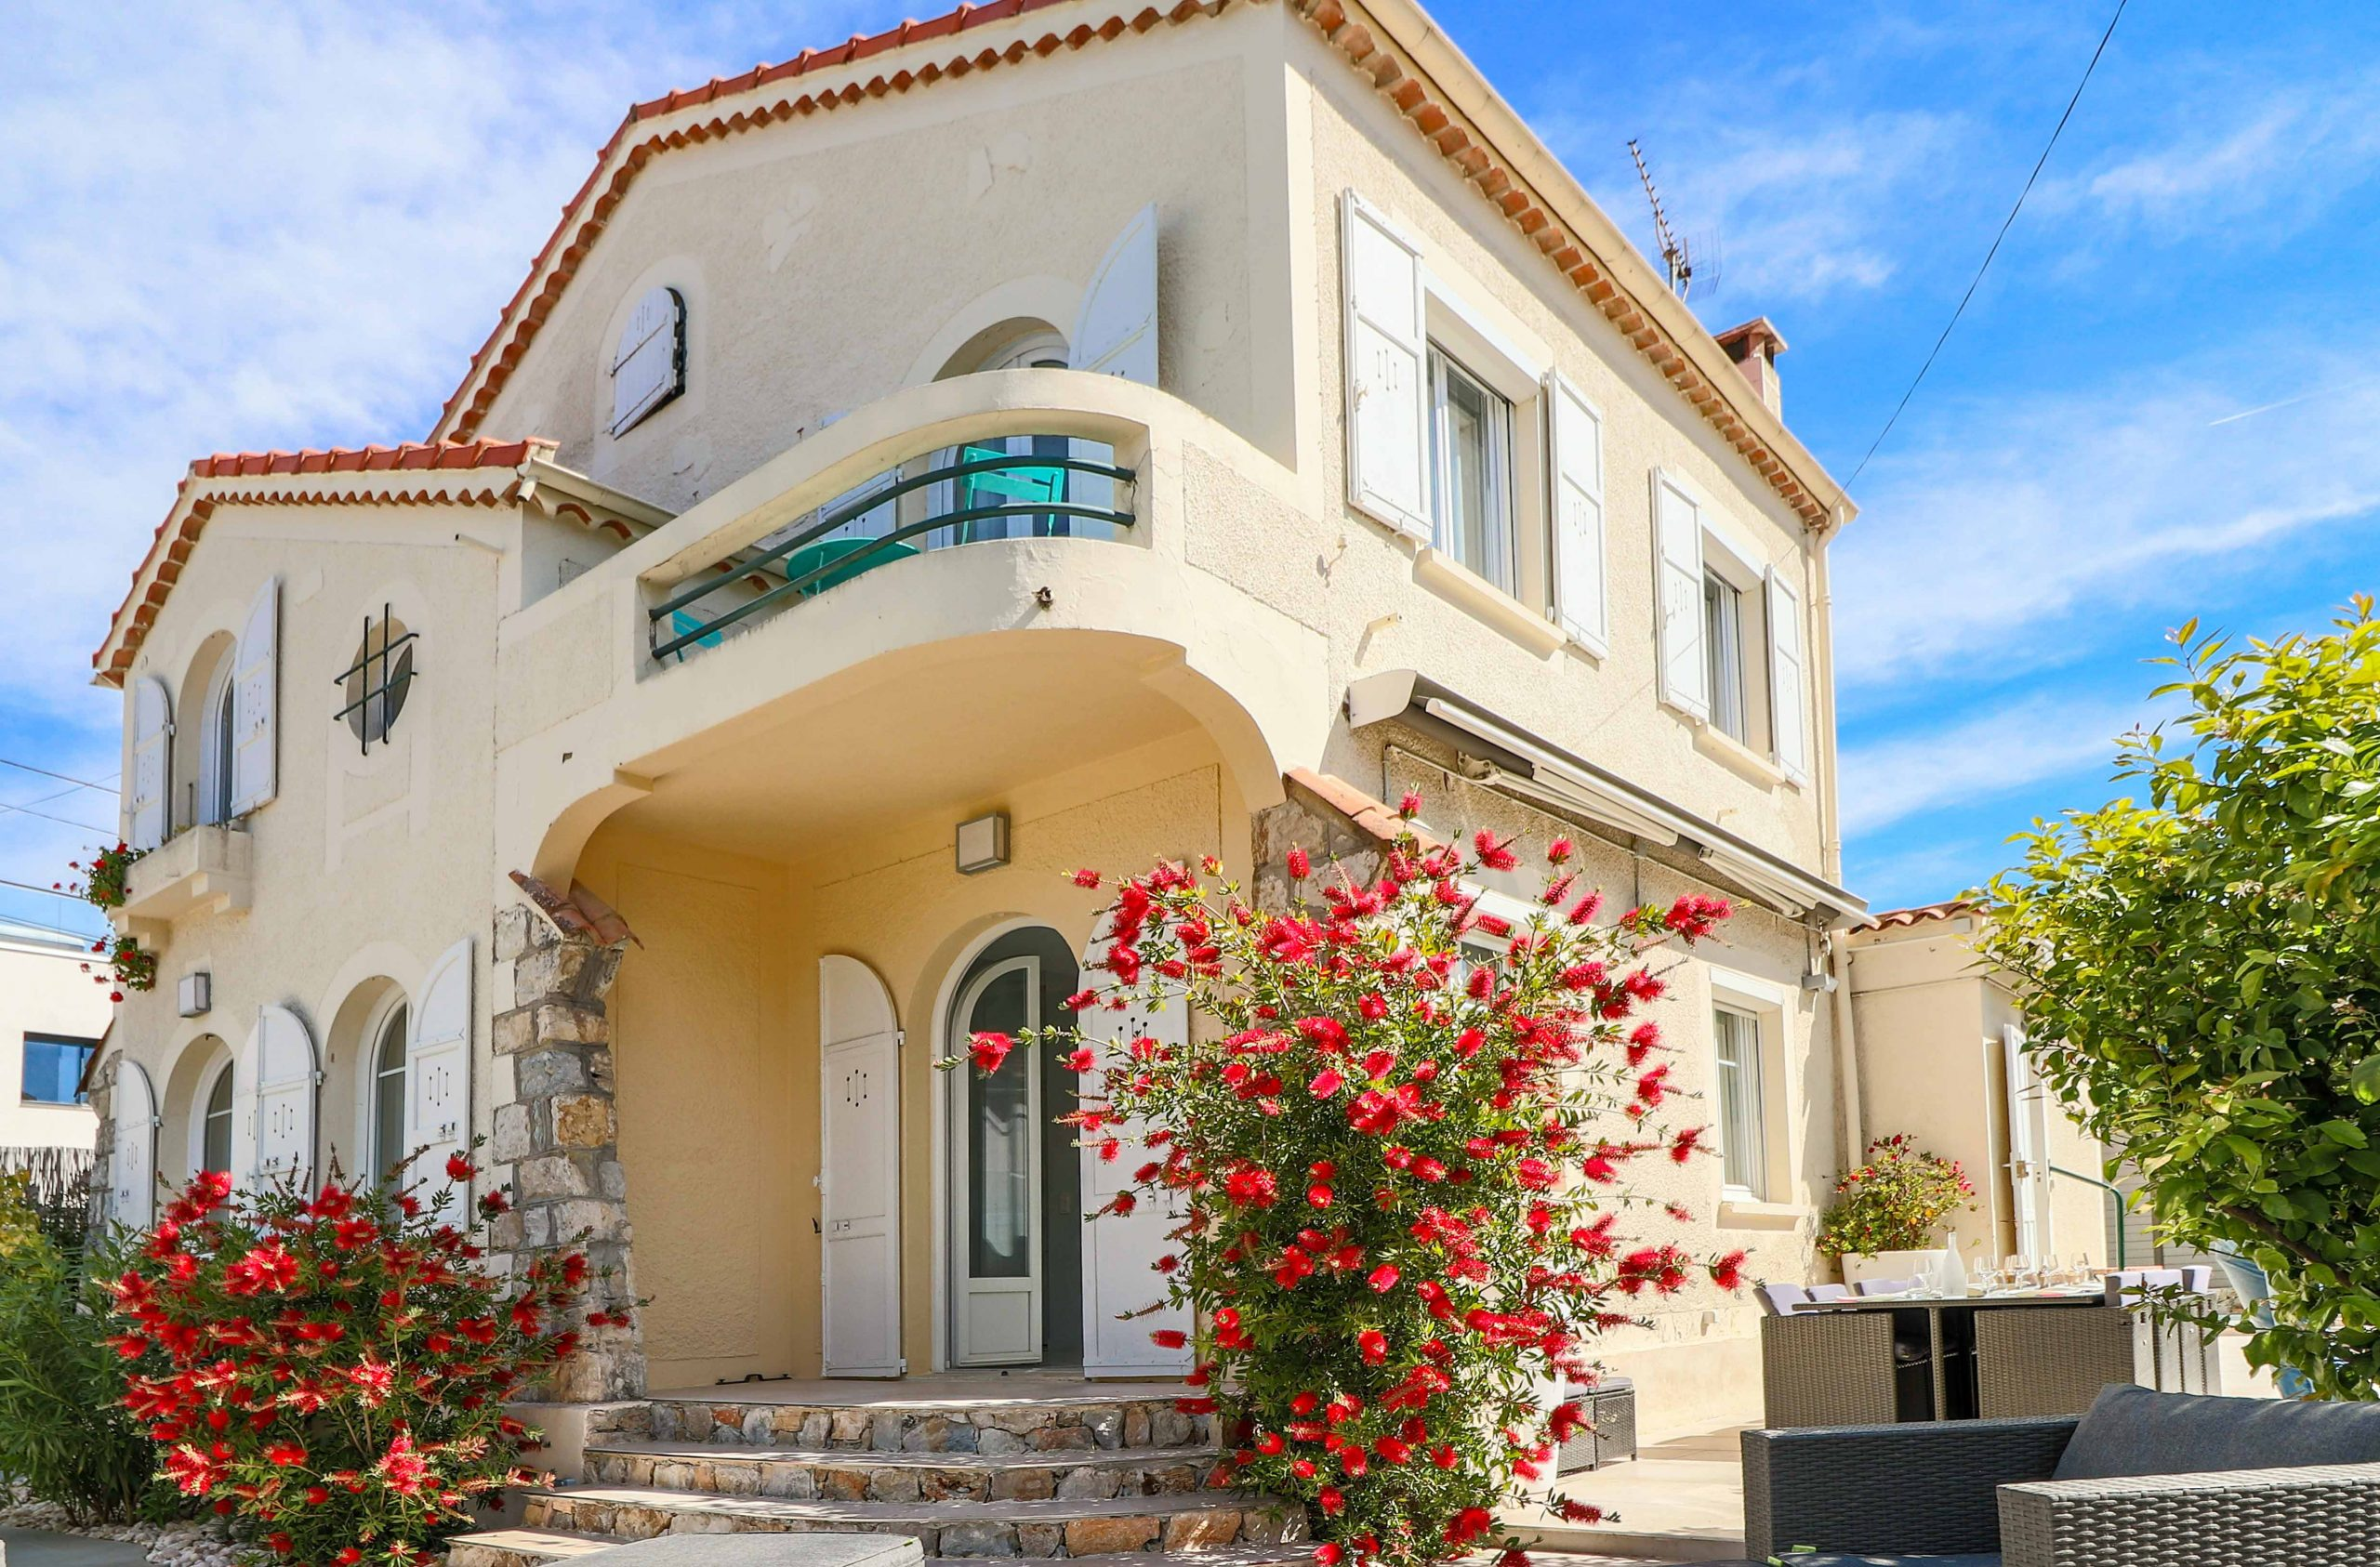 Property Juan les pins villa rental